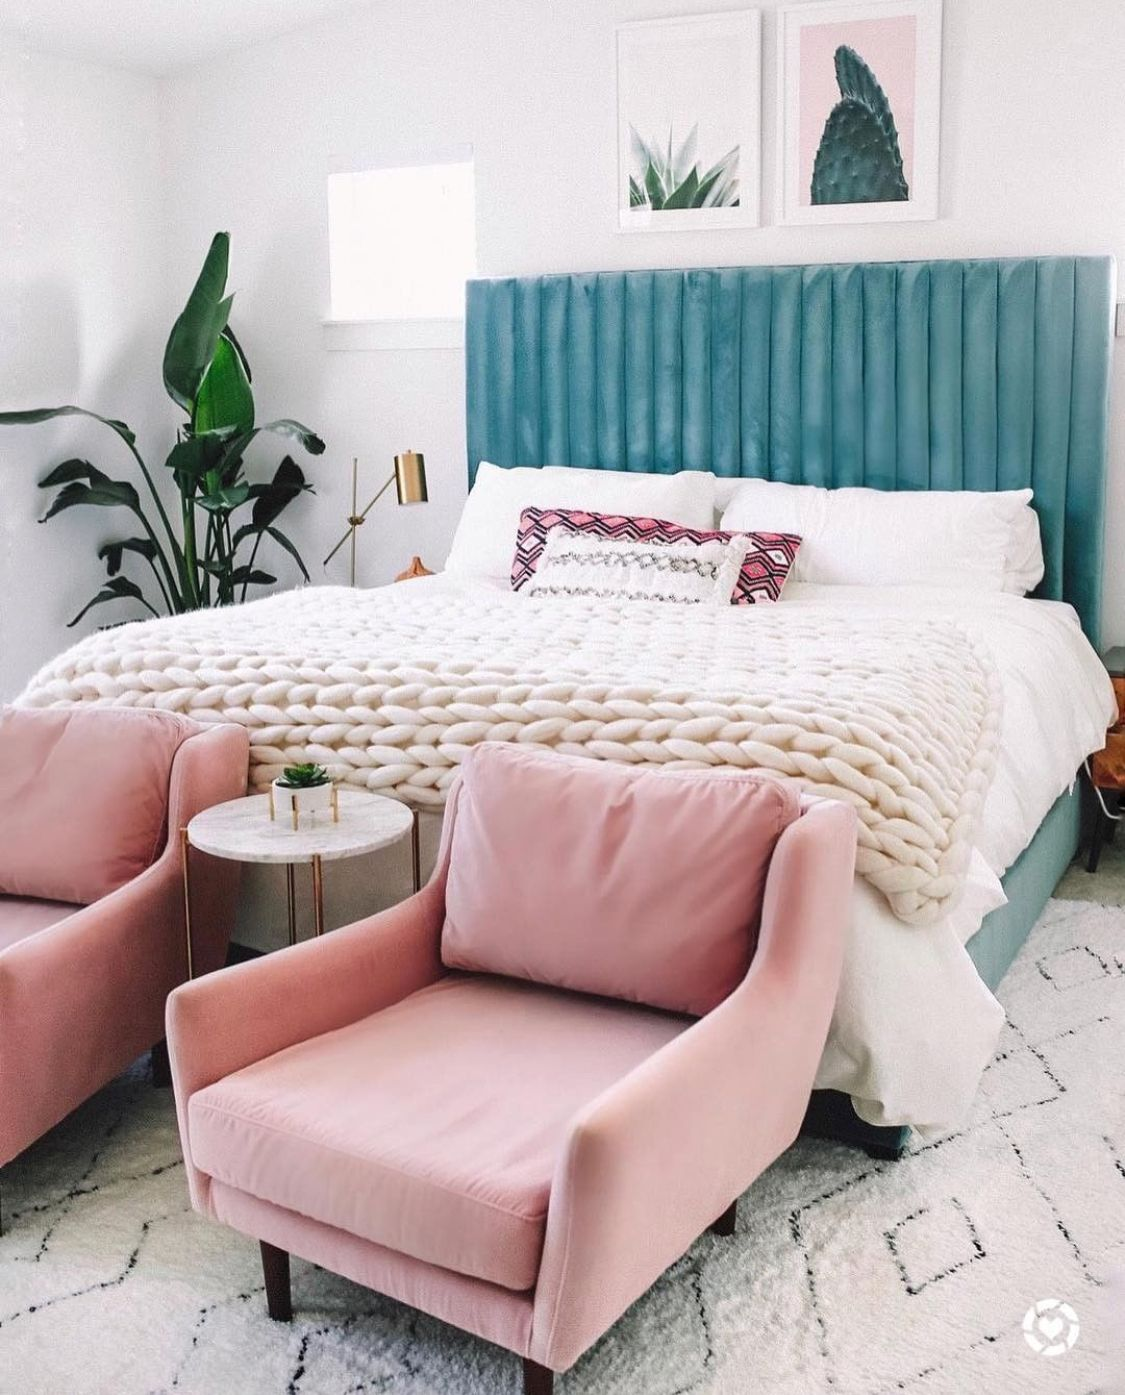 Boho Bedroom A Mix Of Mid Century Modern Bohemian And